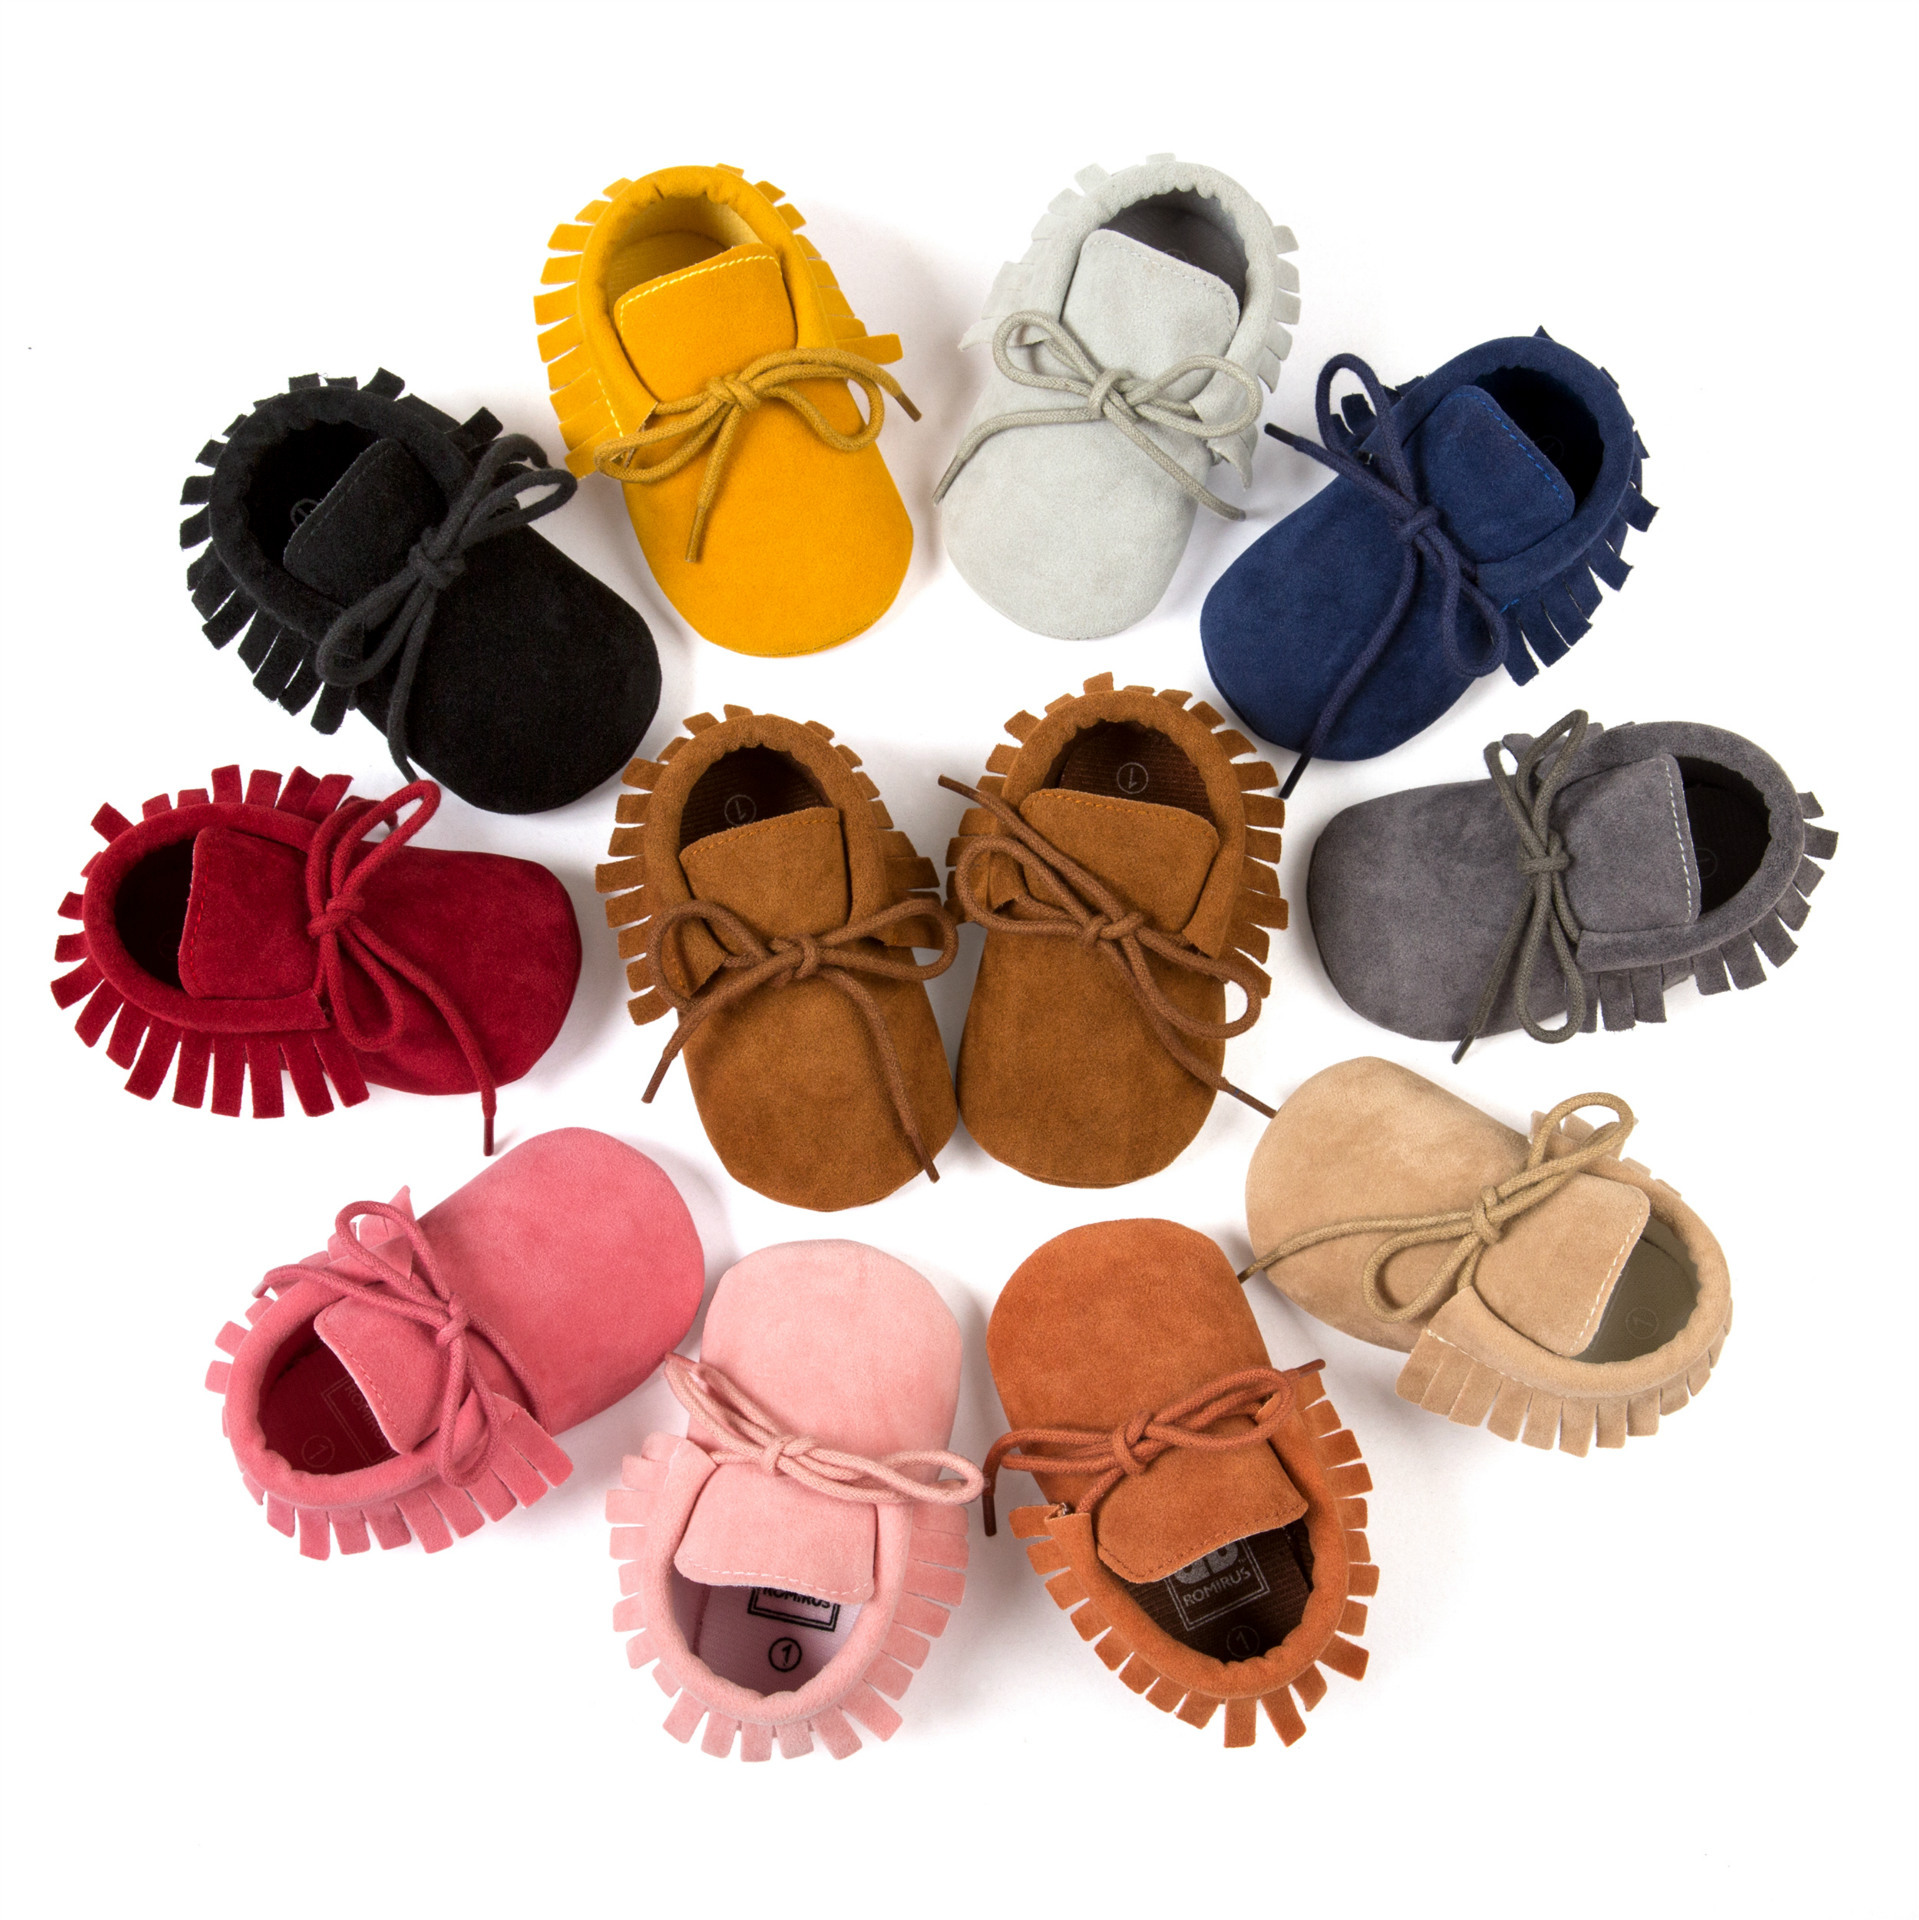 2020 New Classic Pu Suede Leather Newborn Baby Boy Girl Baby Moccasins Soft Shoes Fringe Soft Soled Non Slip Footwear Crib Shoes First Walkers Aliexpress